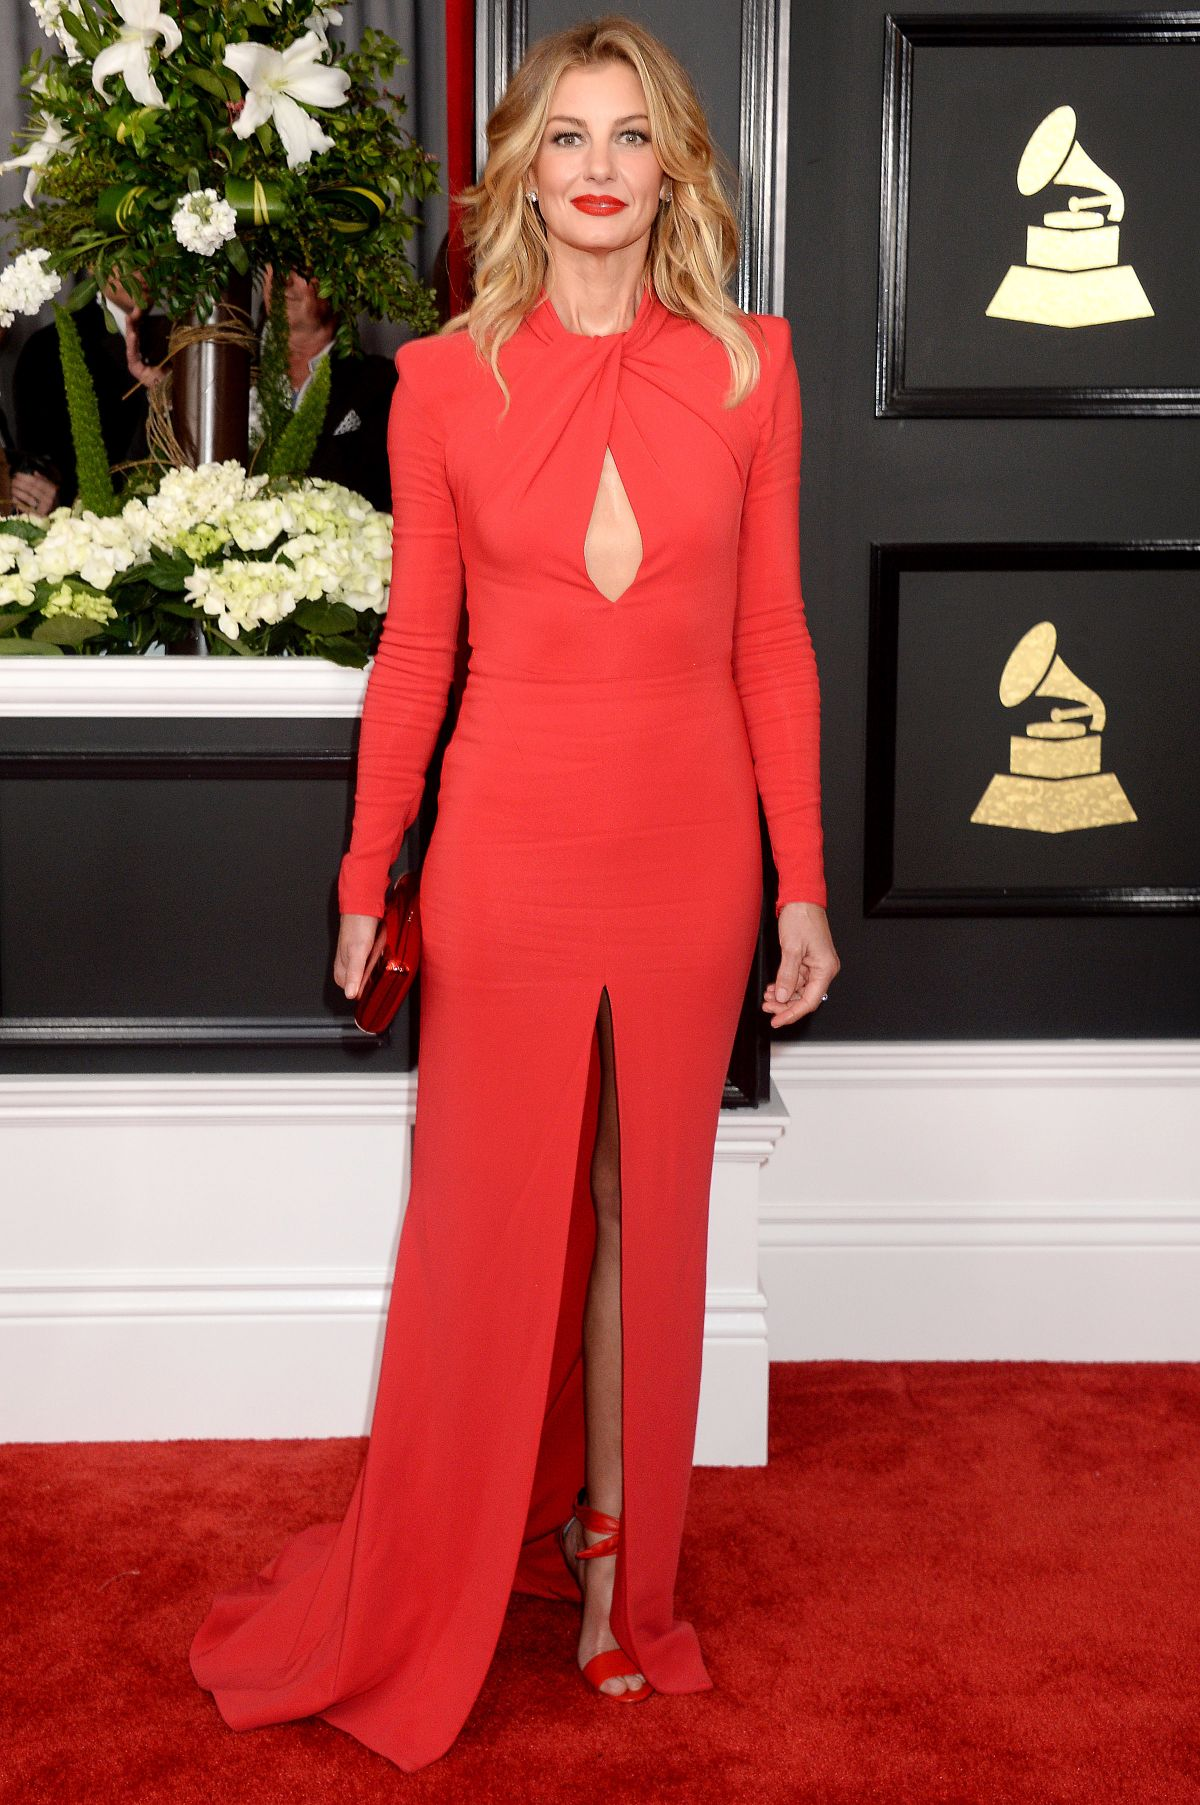 FAITH HILL at 59th Annual Grammy Awards in Los Angeles 02/12/2017